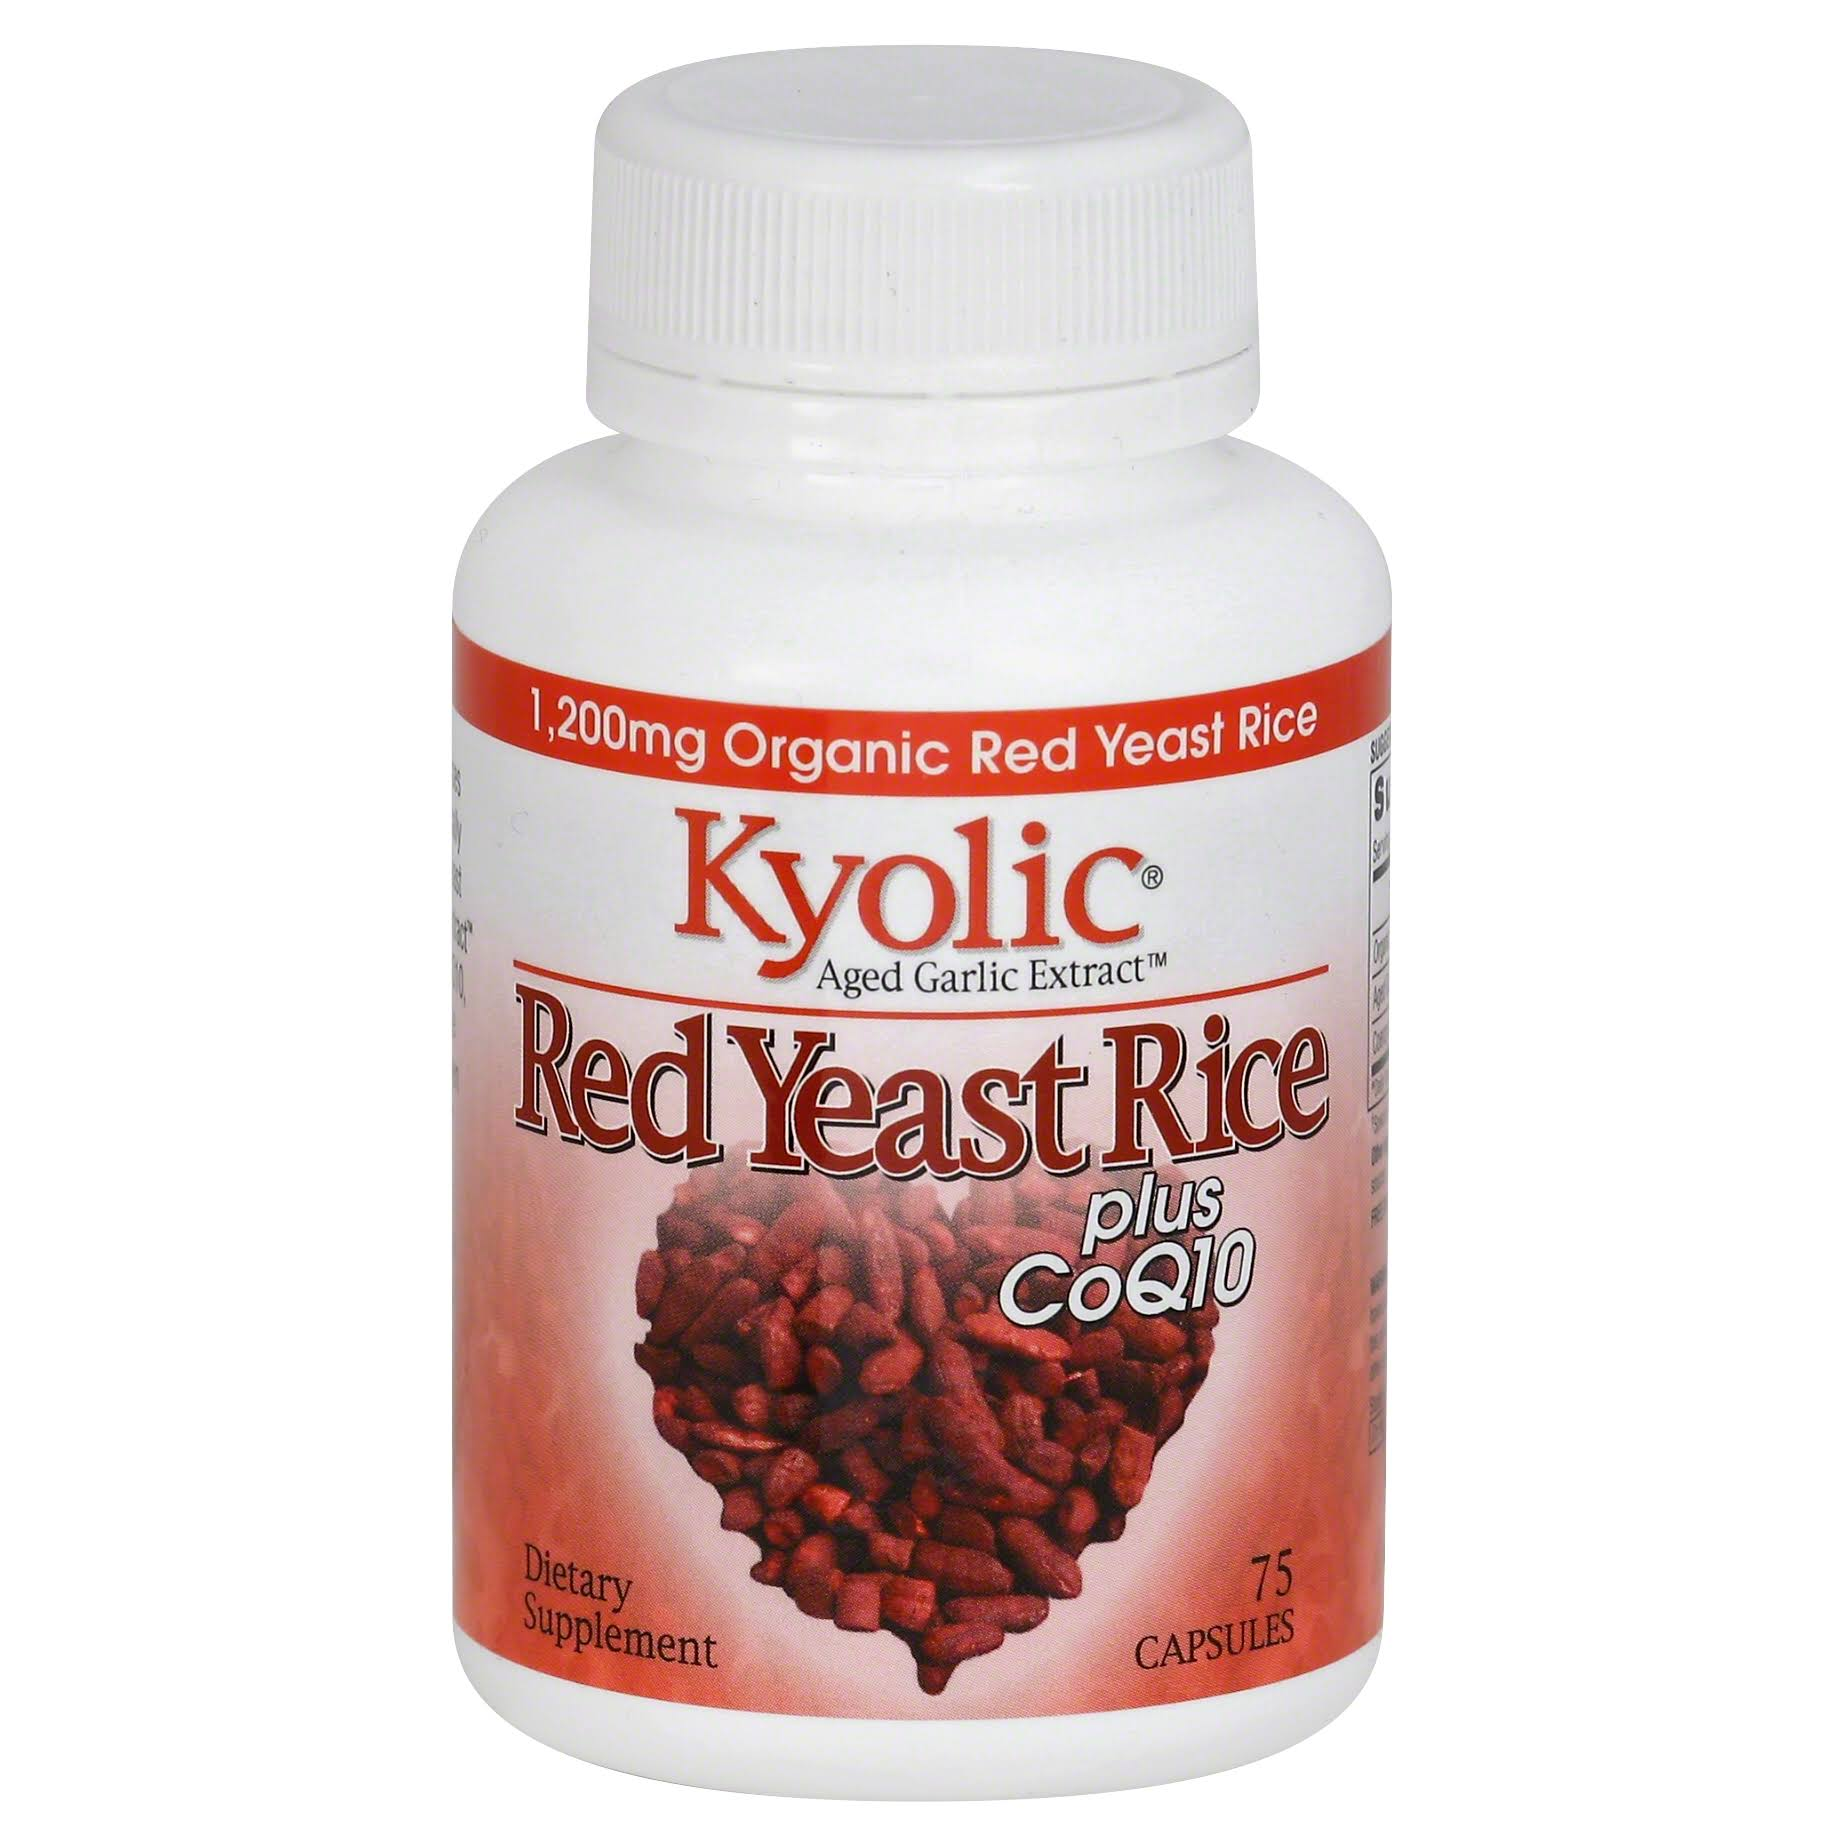 Wakunaga Kyolic Total Aged Garlic Extract Coq10 Dietary Supplement - 75ct